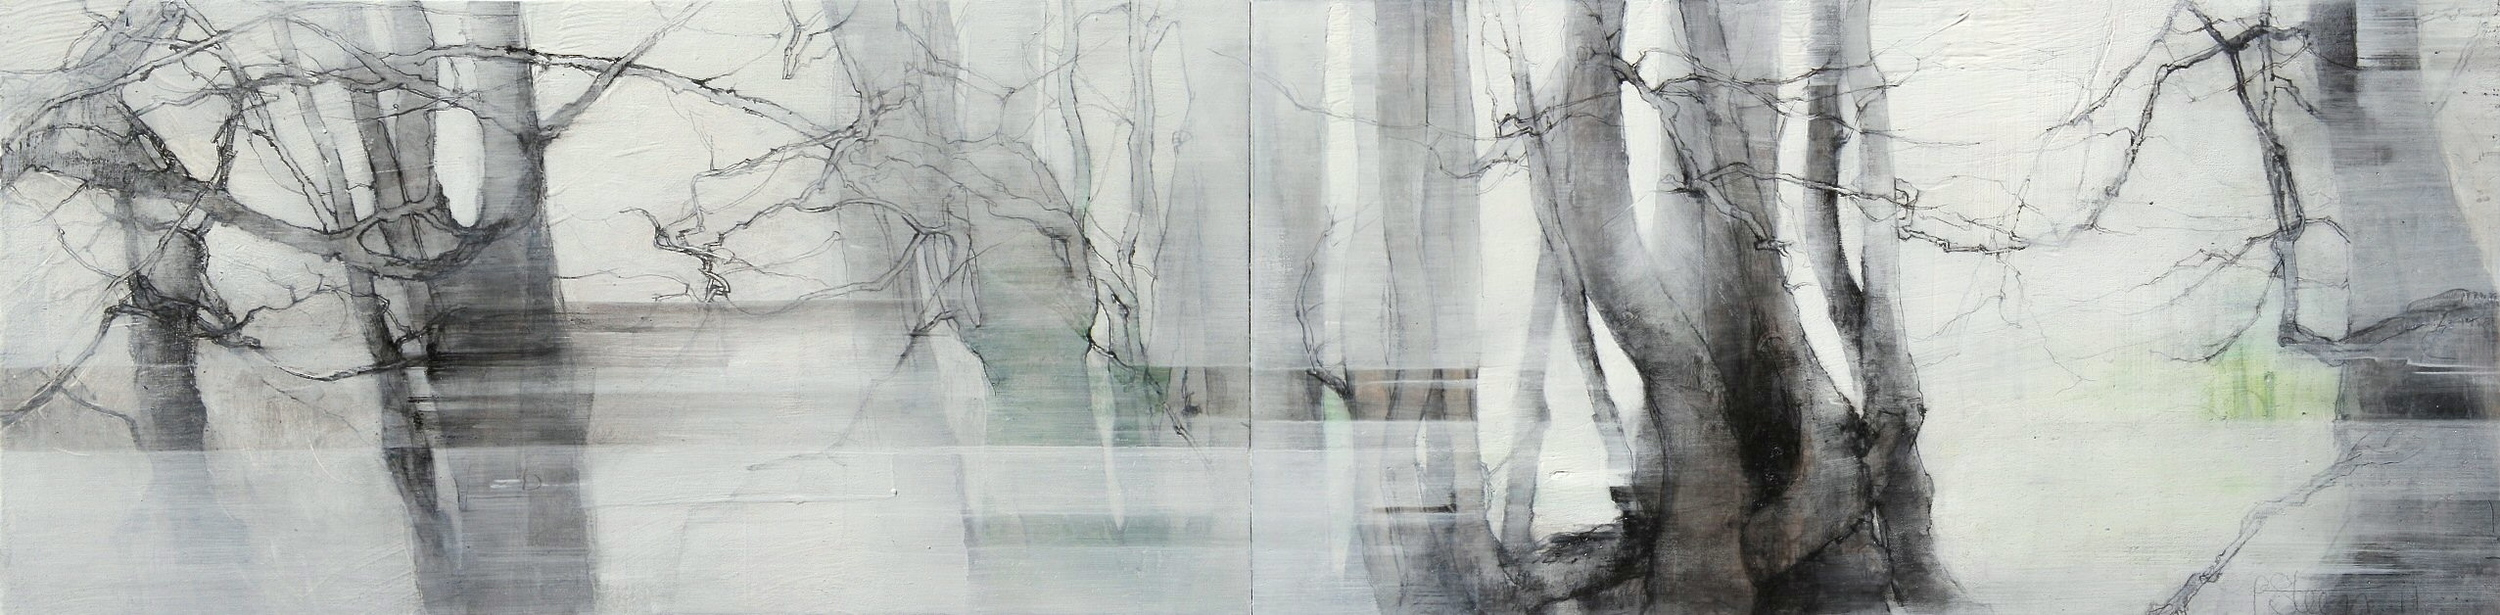 Laurie Steen  RWA Liminal View 09.03.2009 Drawing 04 - 11 20 x 80 cm graphite & oil on gesso panel   S O L D